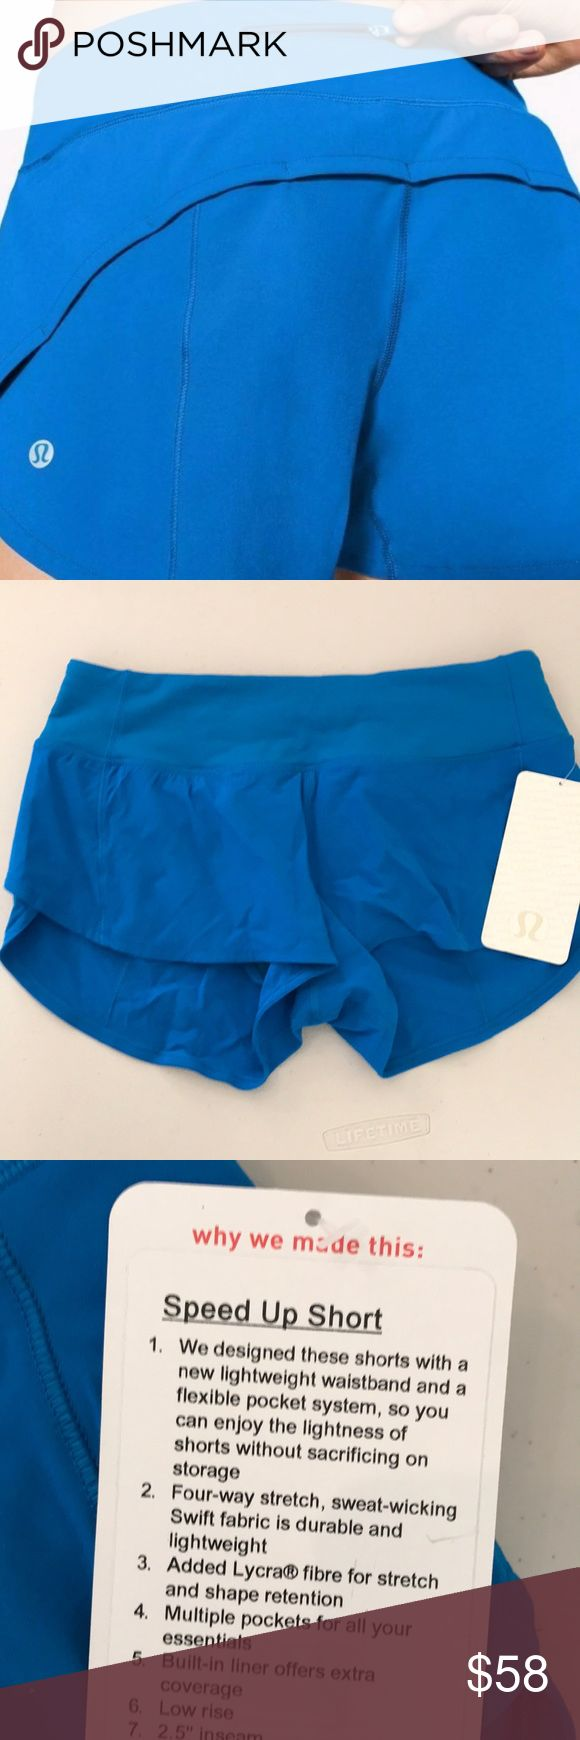 NET AMLF LULULEMON SPEED UP SHORT BLUE - - Size 4 Brand: Lululemon Athletica speed up shorts 2.5 inch inseam   Condition: New with tag || Size 4 || AMLF Amalfi Blue     📌NO  TRADES  🛑NO LOWBALL OFFERS  ⛔️NO RUDE COMMENTS  🚷NO MODELING  ☀️Please don't discuss prices in the comment box. Make a reasonable offer and I'll either counter, accept or decline.   I will try to respond to all inquiries in a timely manner. Please check out the rest of my closet, I have various brands. Some new with…